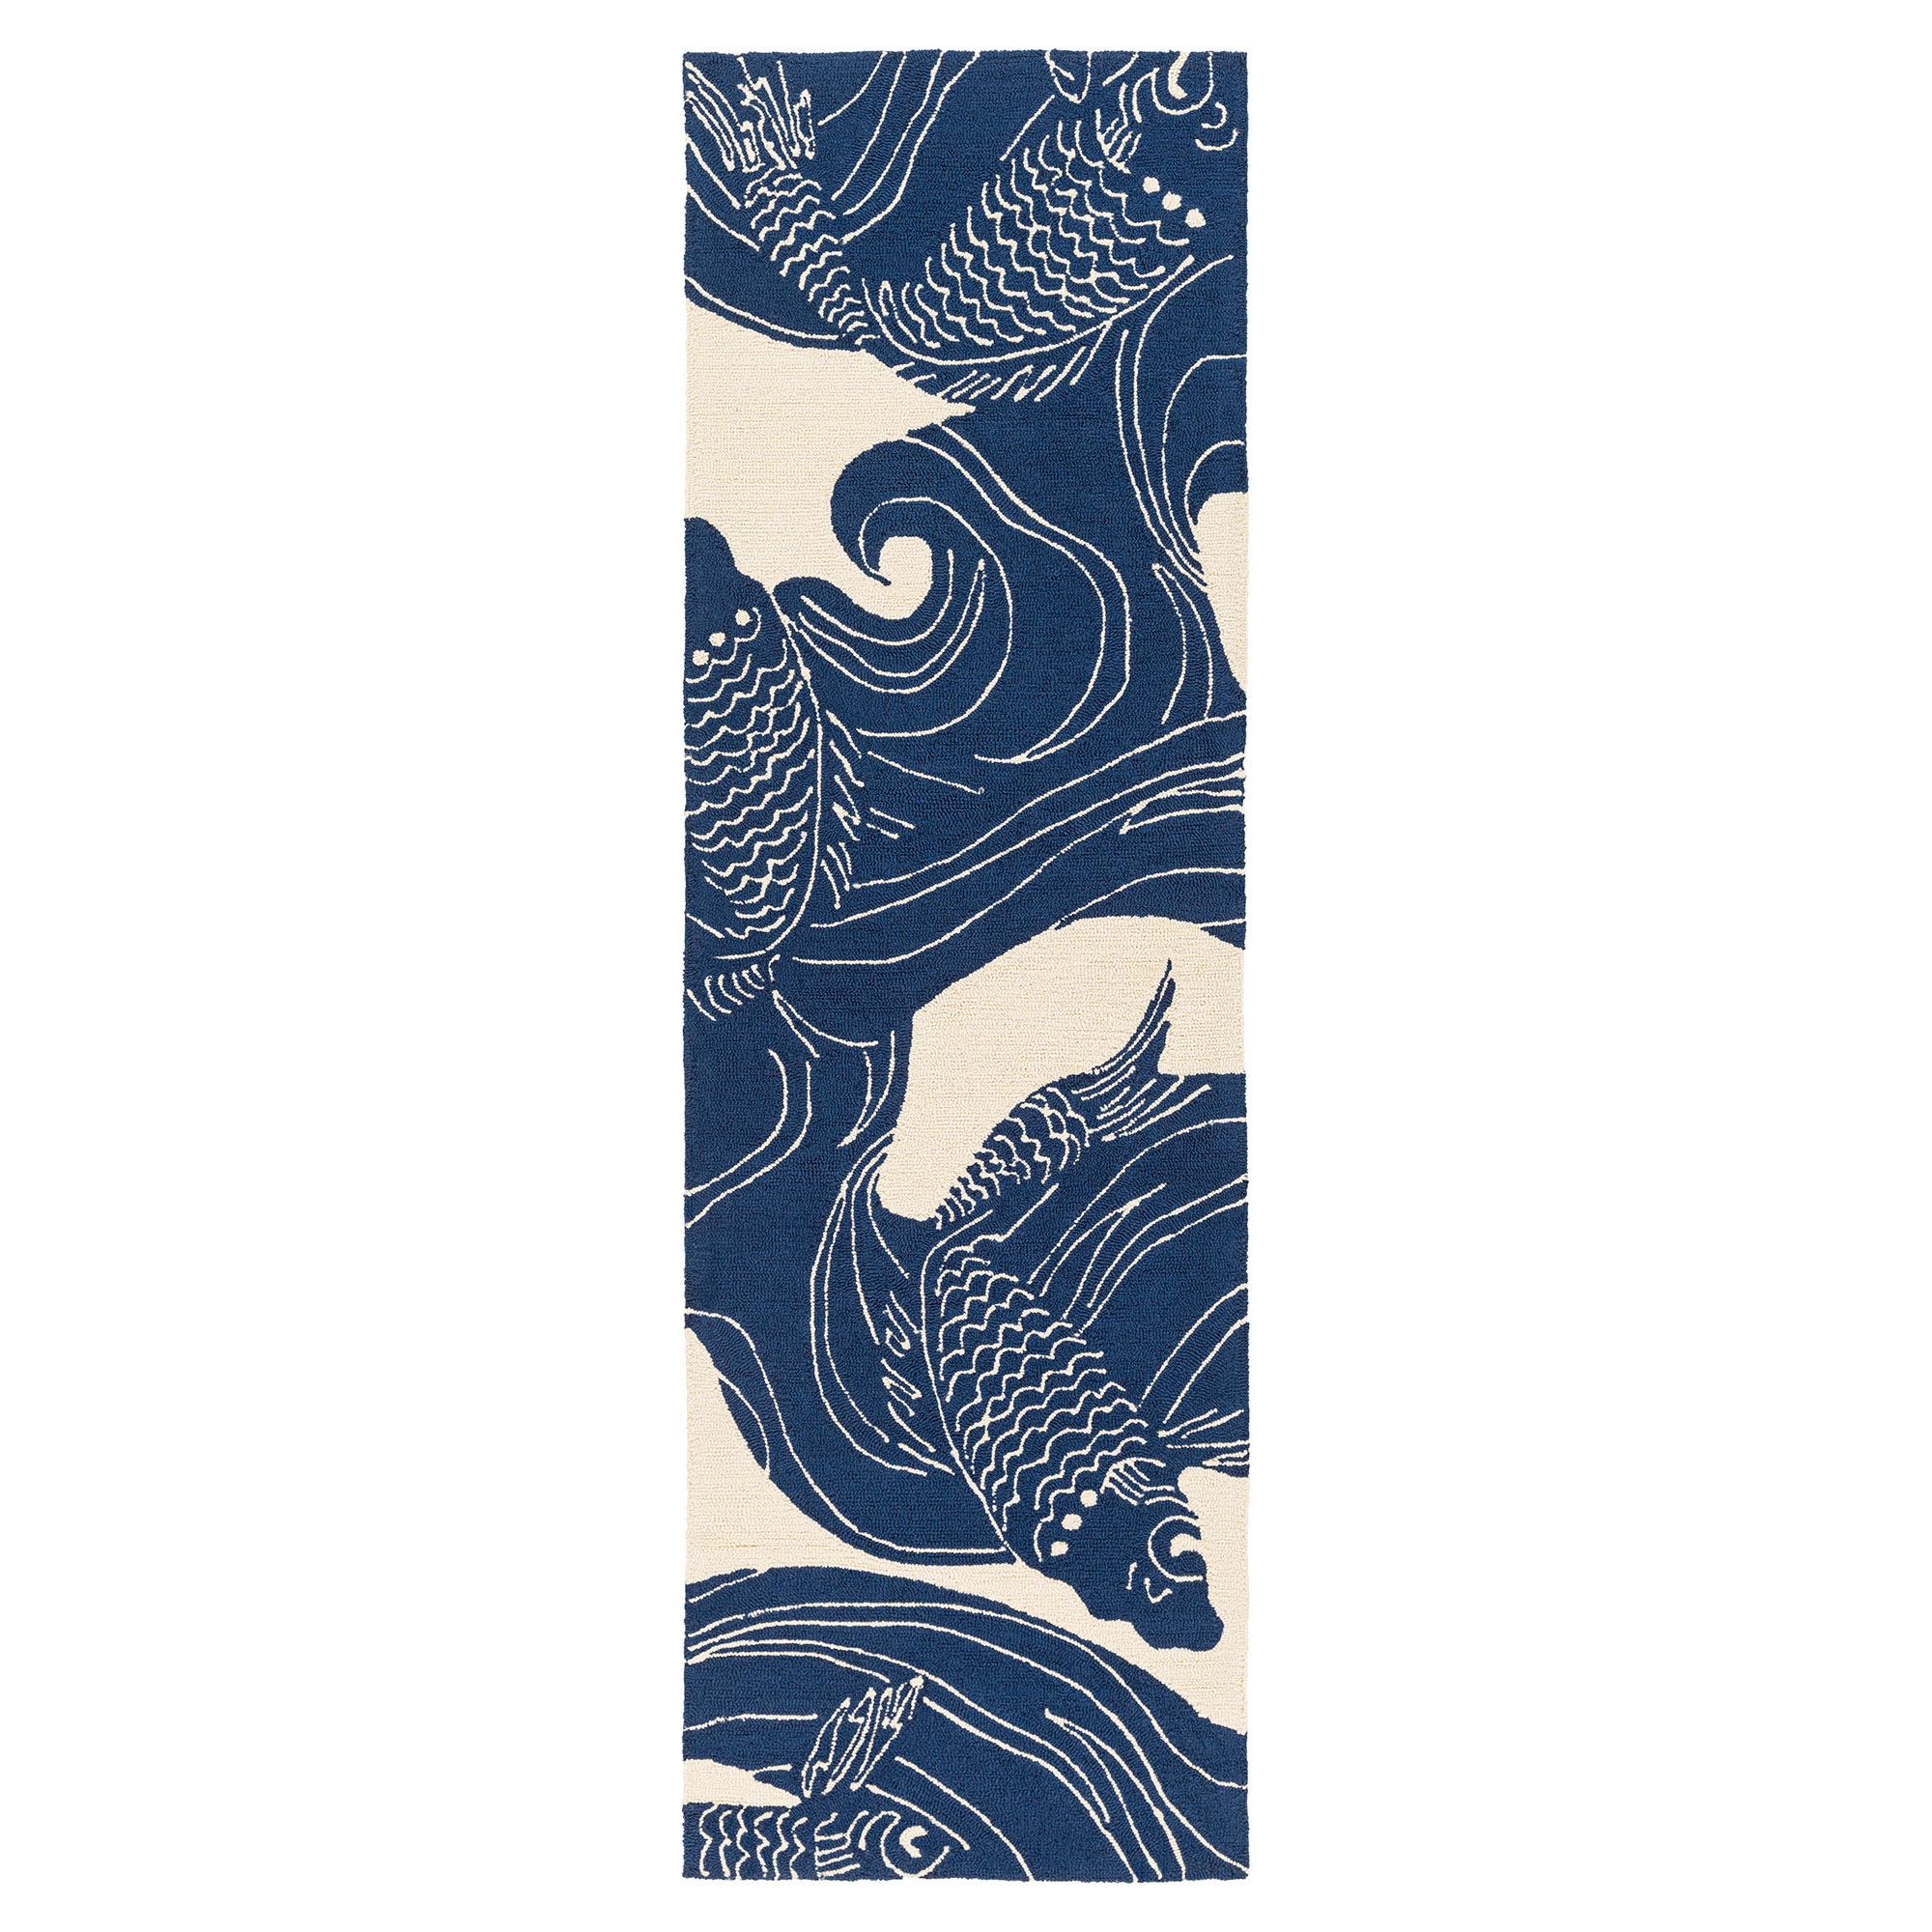 Kana Global Coastal Blue Ocean Koi Outdoor Rug - 2'6x8'